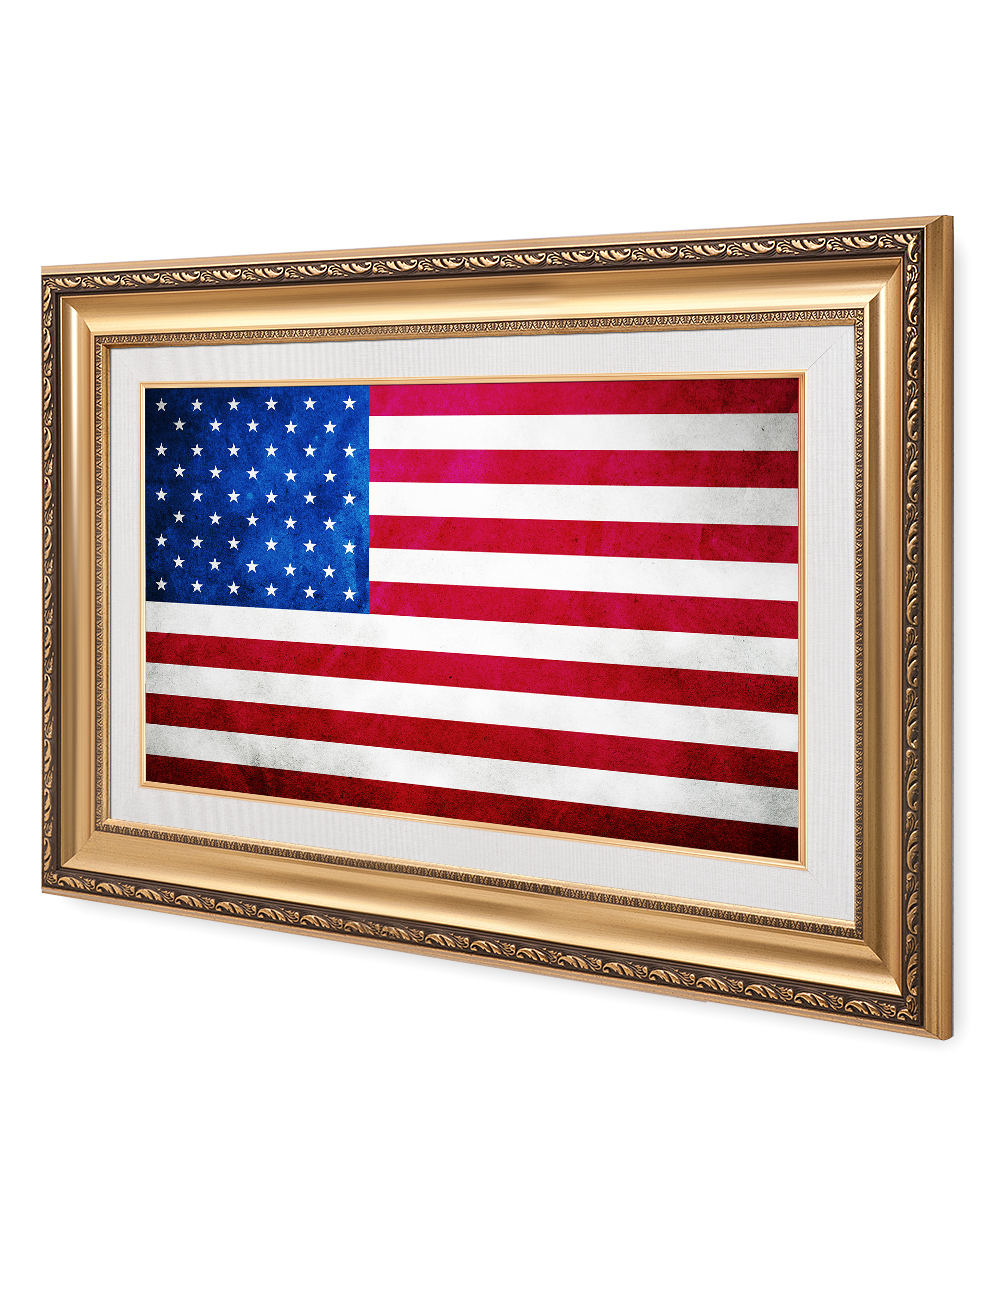 American Flag Vintage Framed Art Giclee Prints For Home